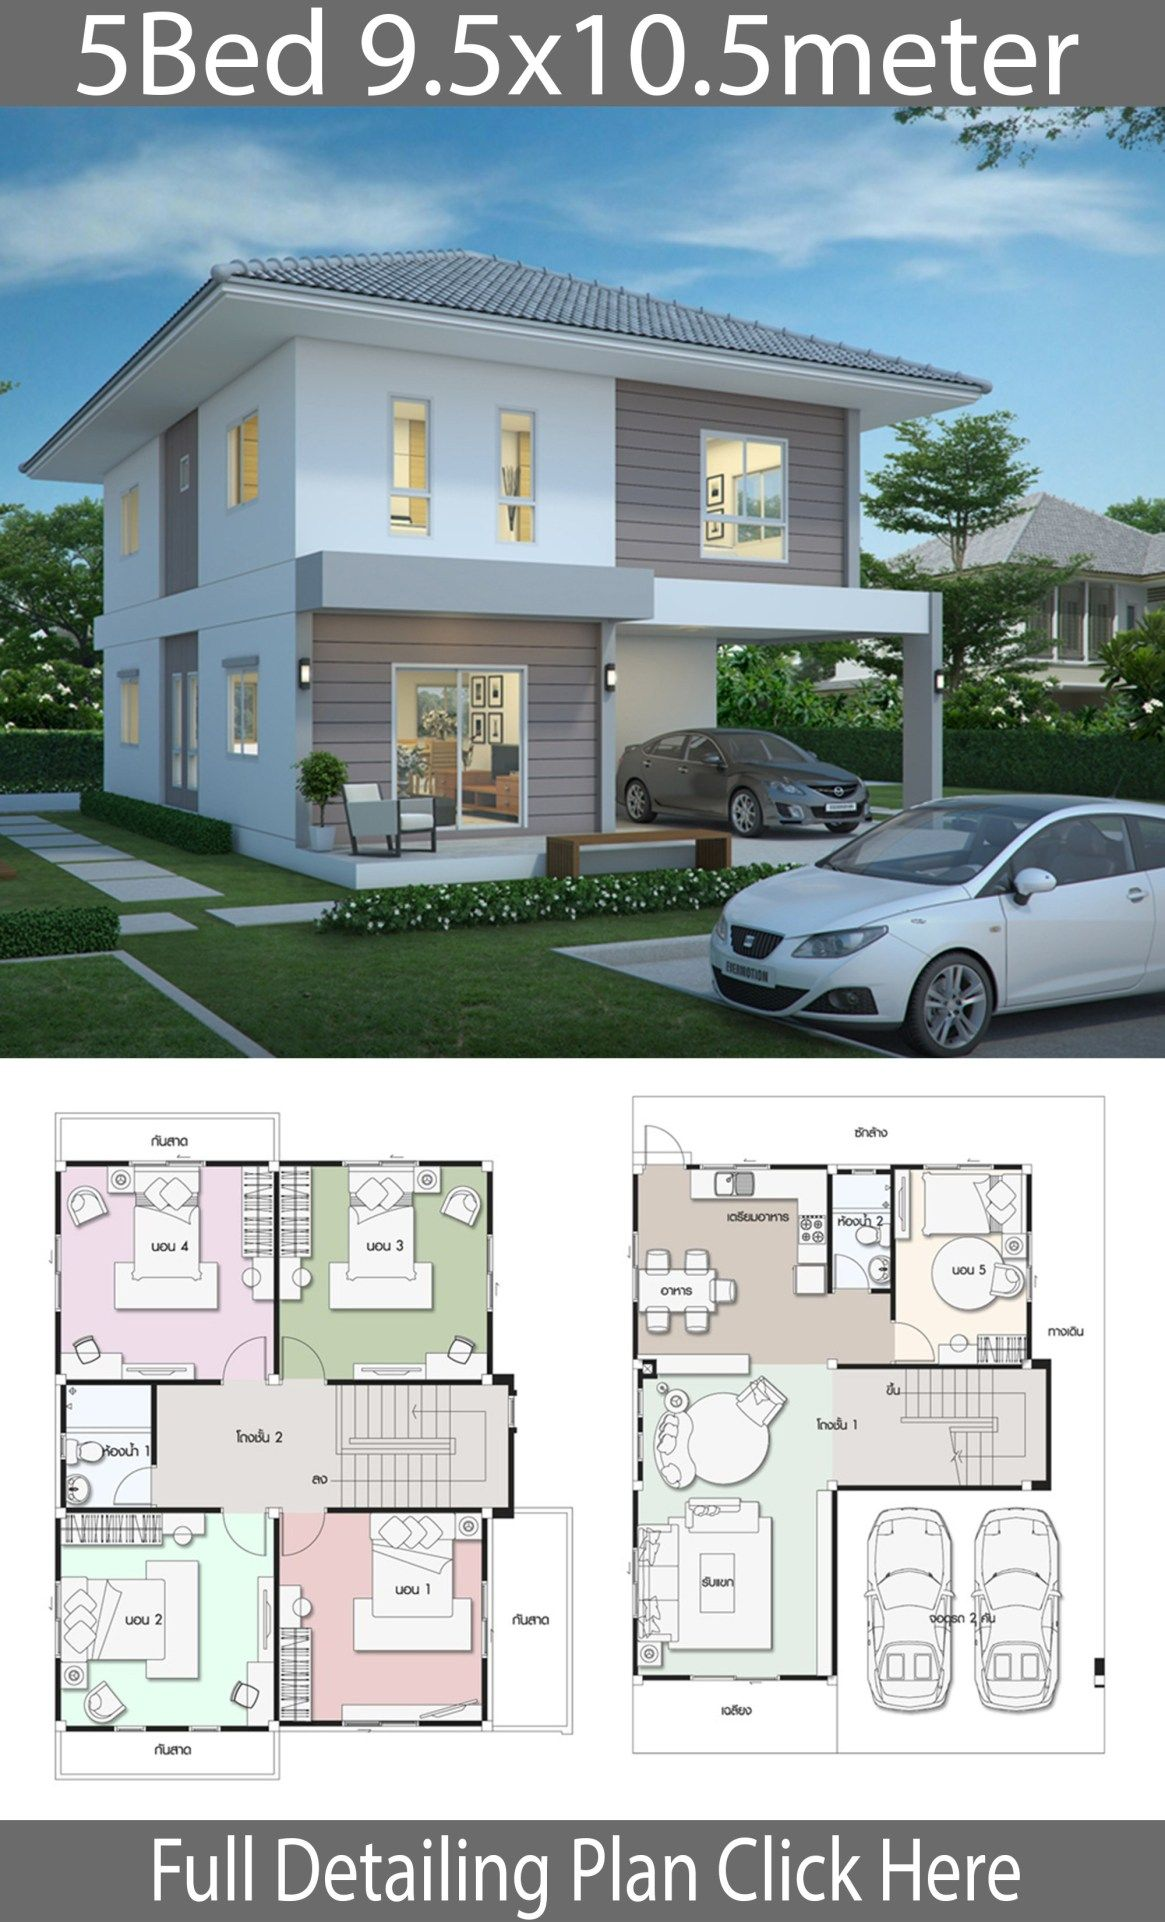 Home Design Plan 9 5x10 5m With 5 Bedrooms 2 Storey House Design Small Modern House Plans House Layout Plans